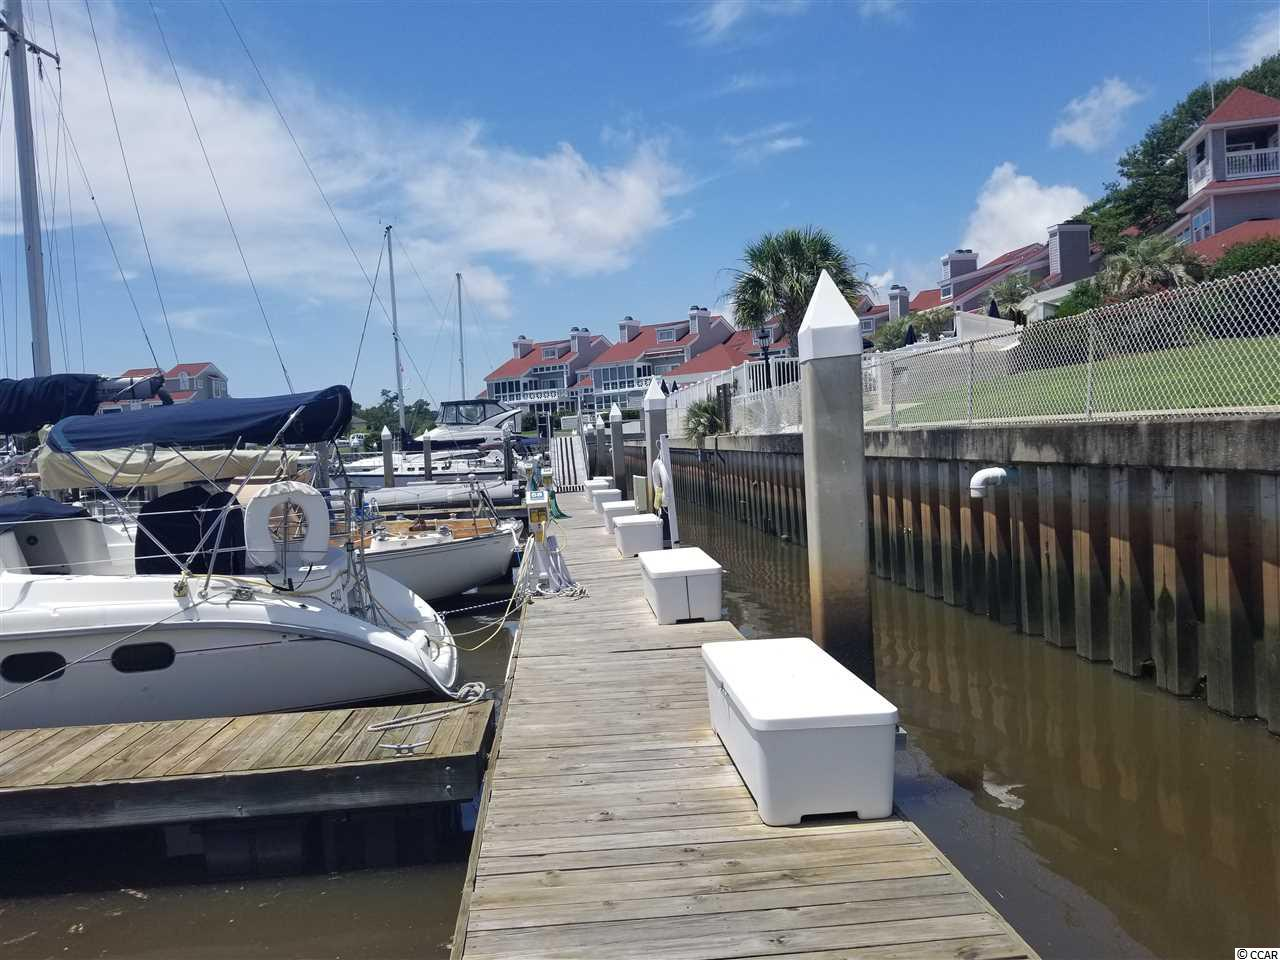 Closest 35' slip to the Little River Inlet! Floating docks with dock locker, electricity, and water at the slip. Ammenities include clubhouse with licensed bar open 5 days per week, showers, year round pool and spa, etc. Slip 42 is located in protected corner of the main channel with convenient parking. Gated community with secured docks.